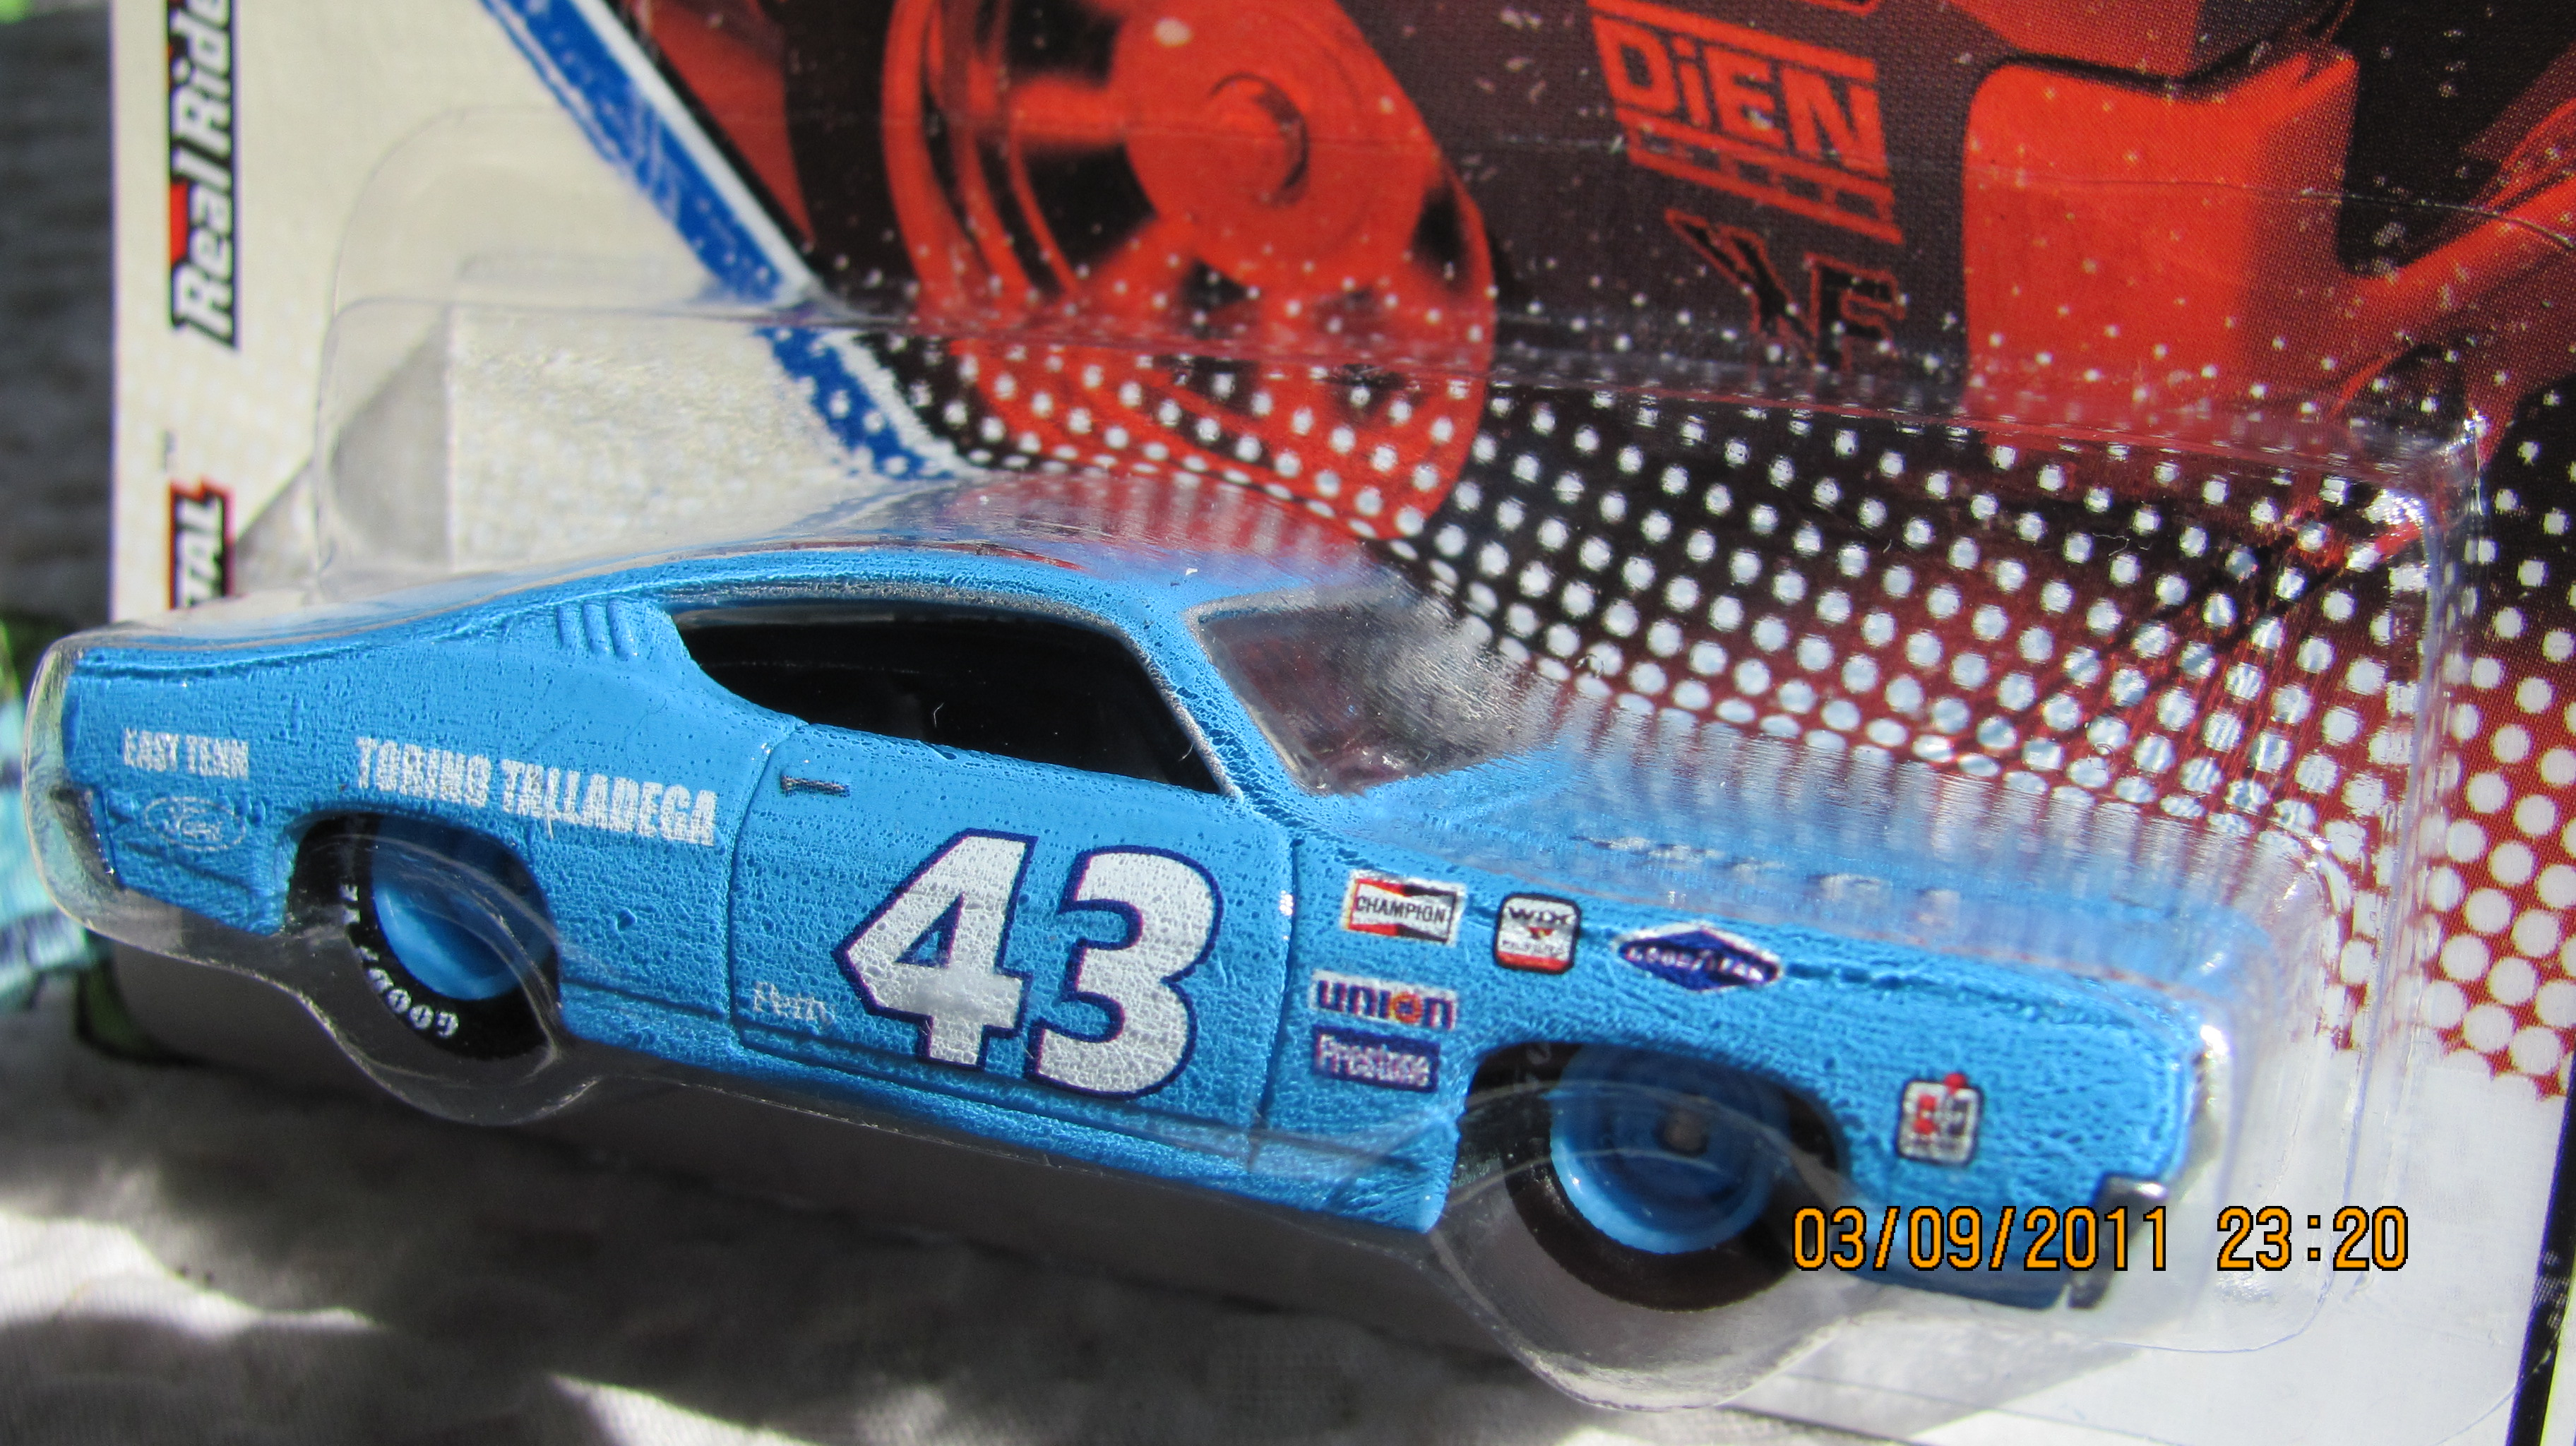 Vintage Racing | Hot Wheels Wiki | FANDOM powered by Wikia